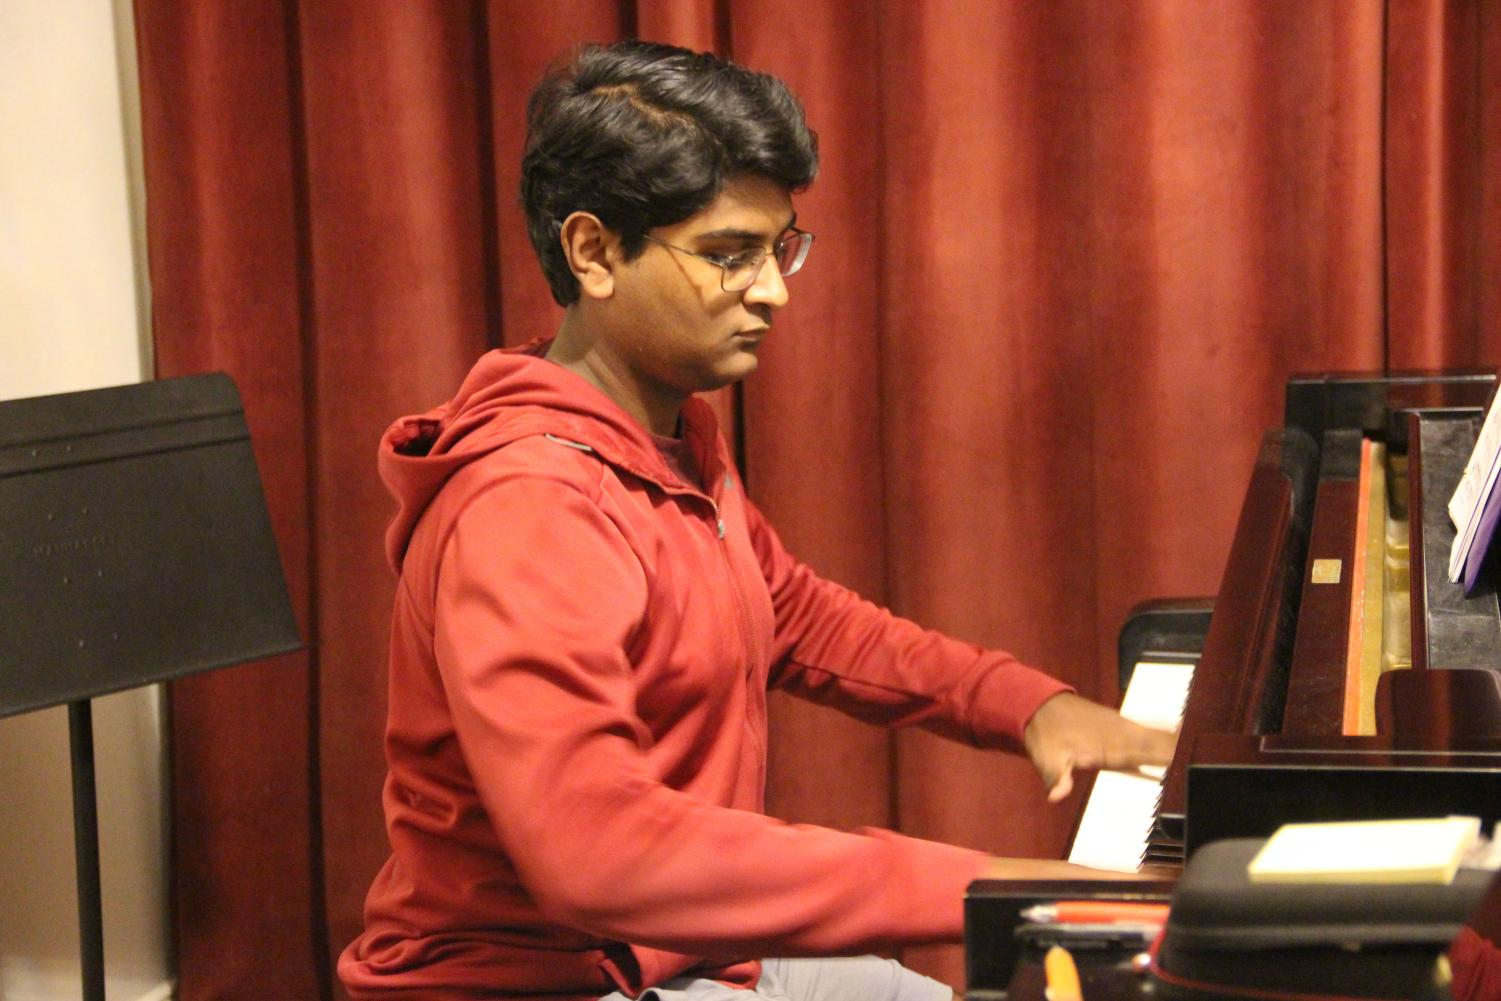 Coppell High School sophomore Joseph Mathew practices Chopin's Fantaisie Impromptu Op. 66 at the home of his piano teacher, Hwa Lee, on Nov. 8. Mathew performed this piece at Carnegie Hall in New York City on Dec. 14.